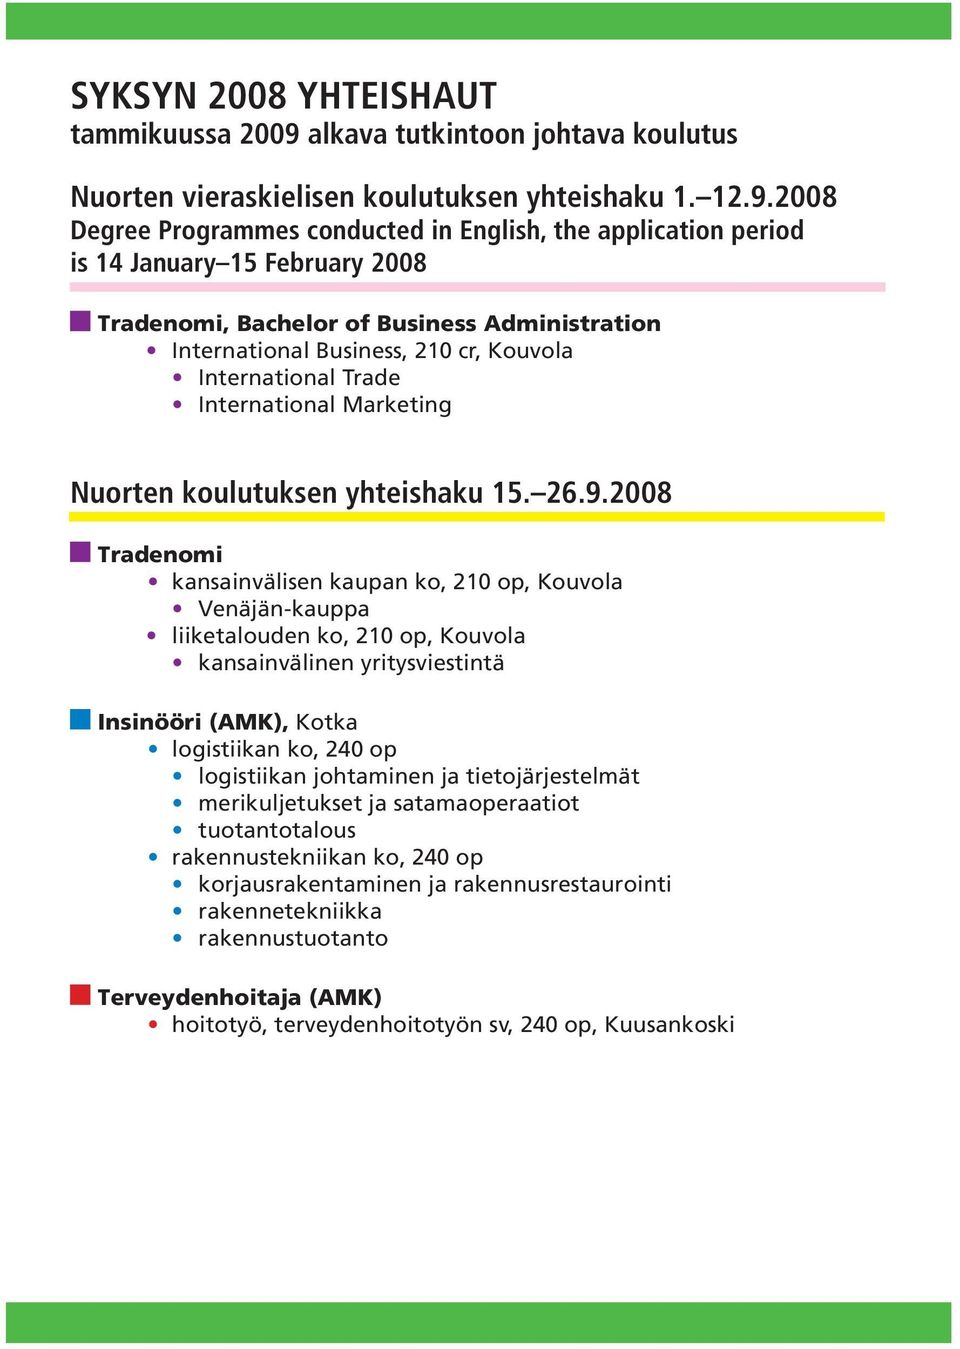 2008 Degree Programmes conducted in English, the application period is 14 January 15 February 2008 Tradenomi, Bachelor of Business Administration International Business, 210 cr, Kouvola International